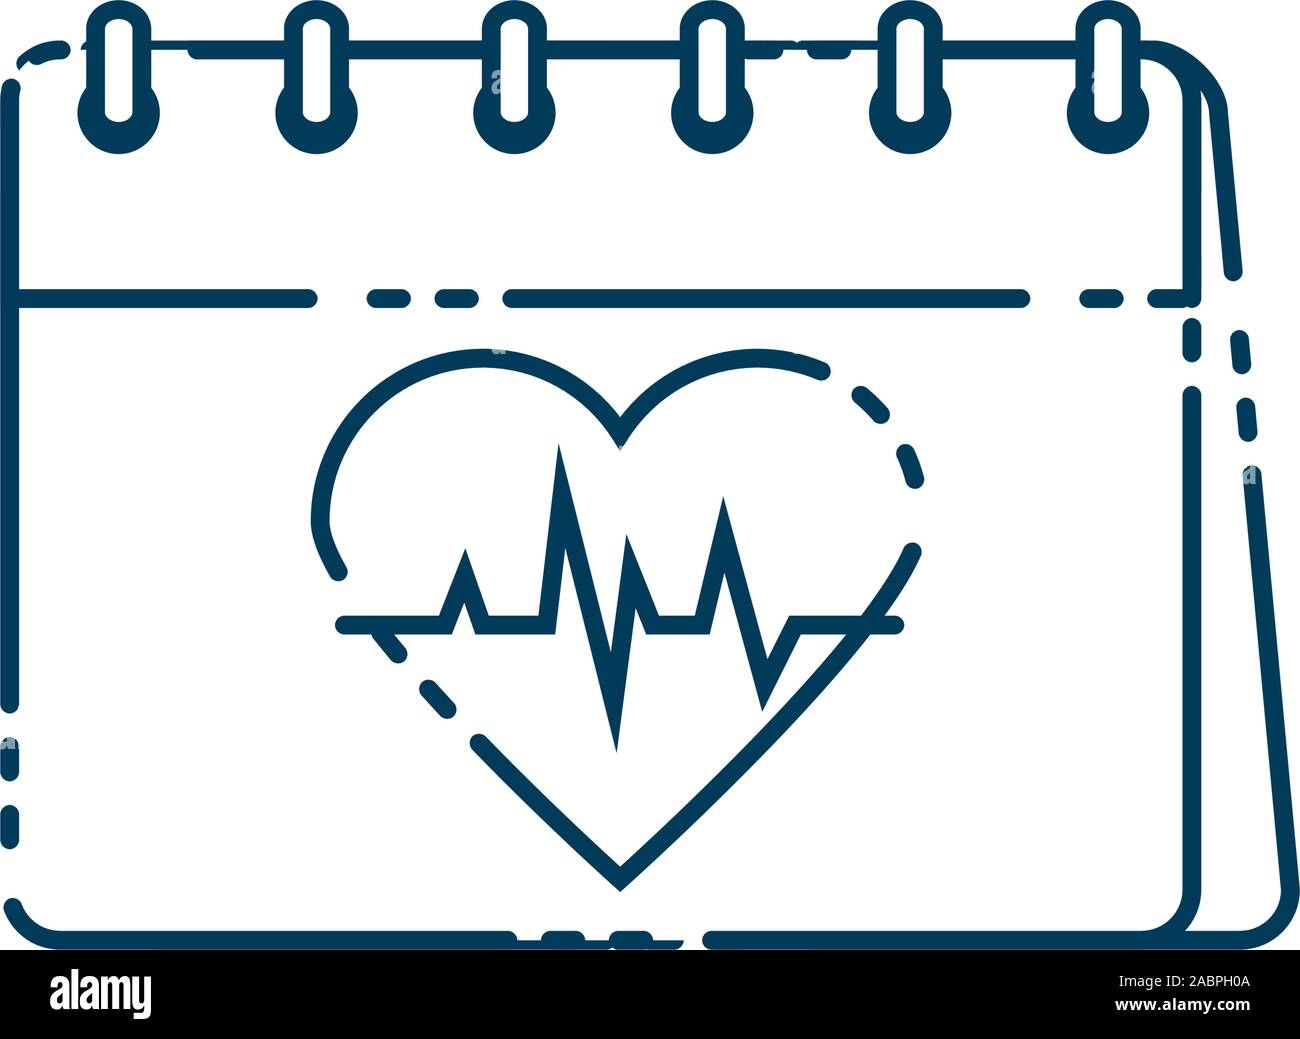 calendar with heart cardio flat style icon vector illustration design Stock Vector